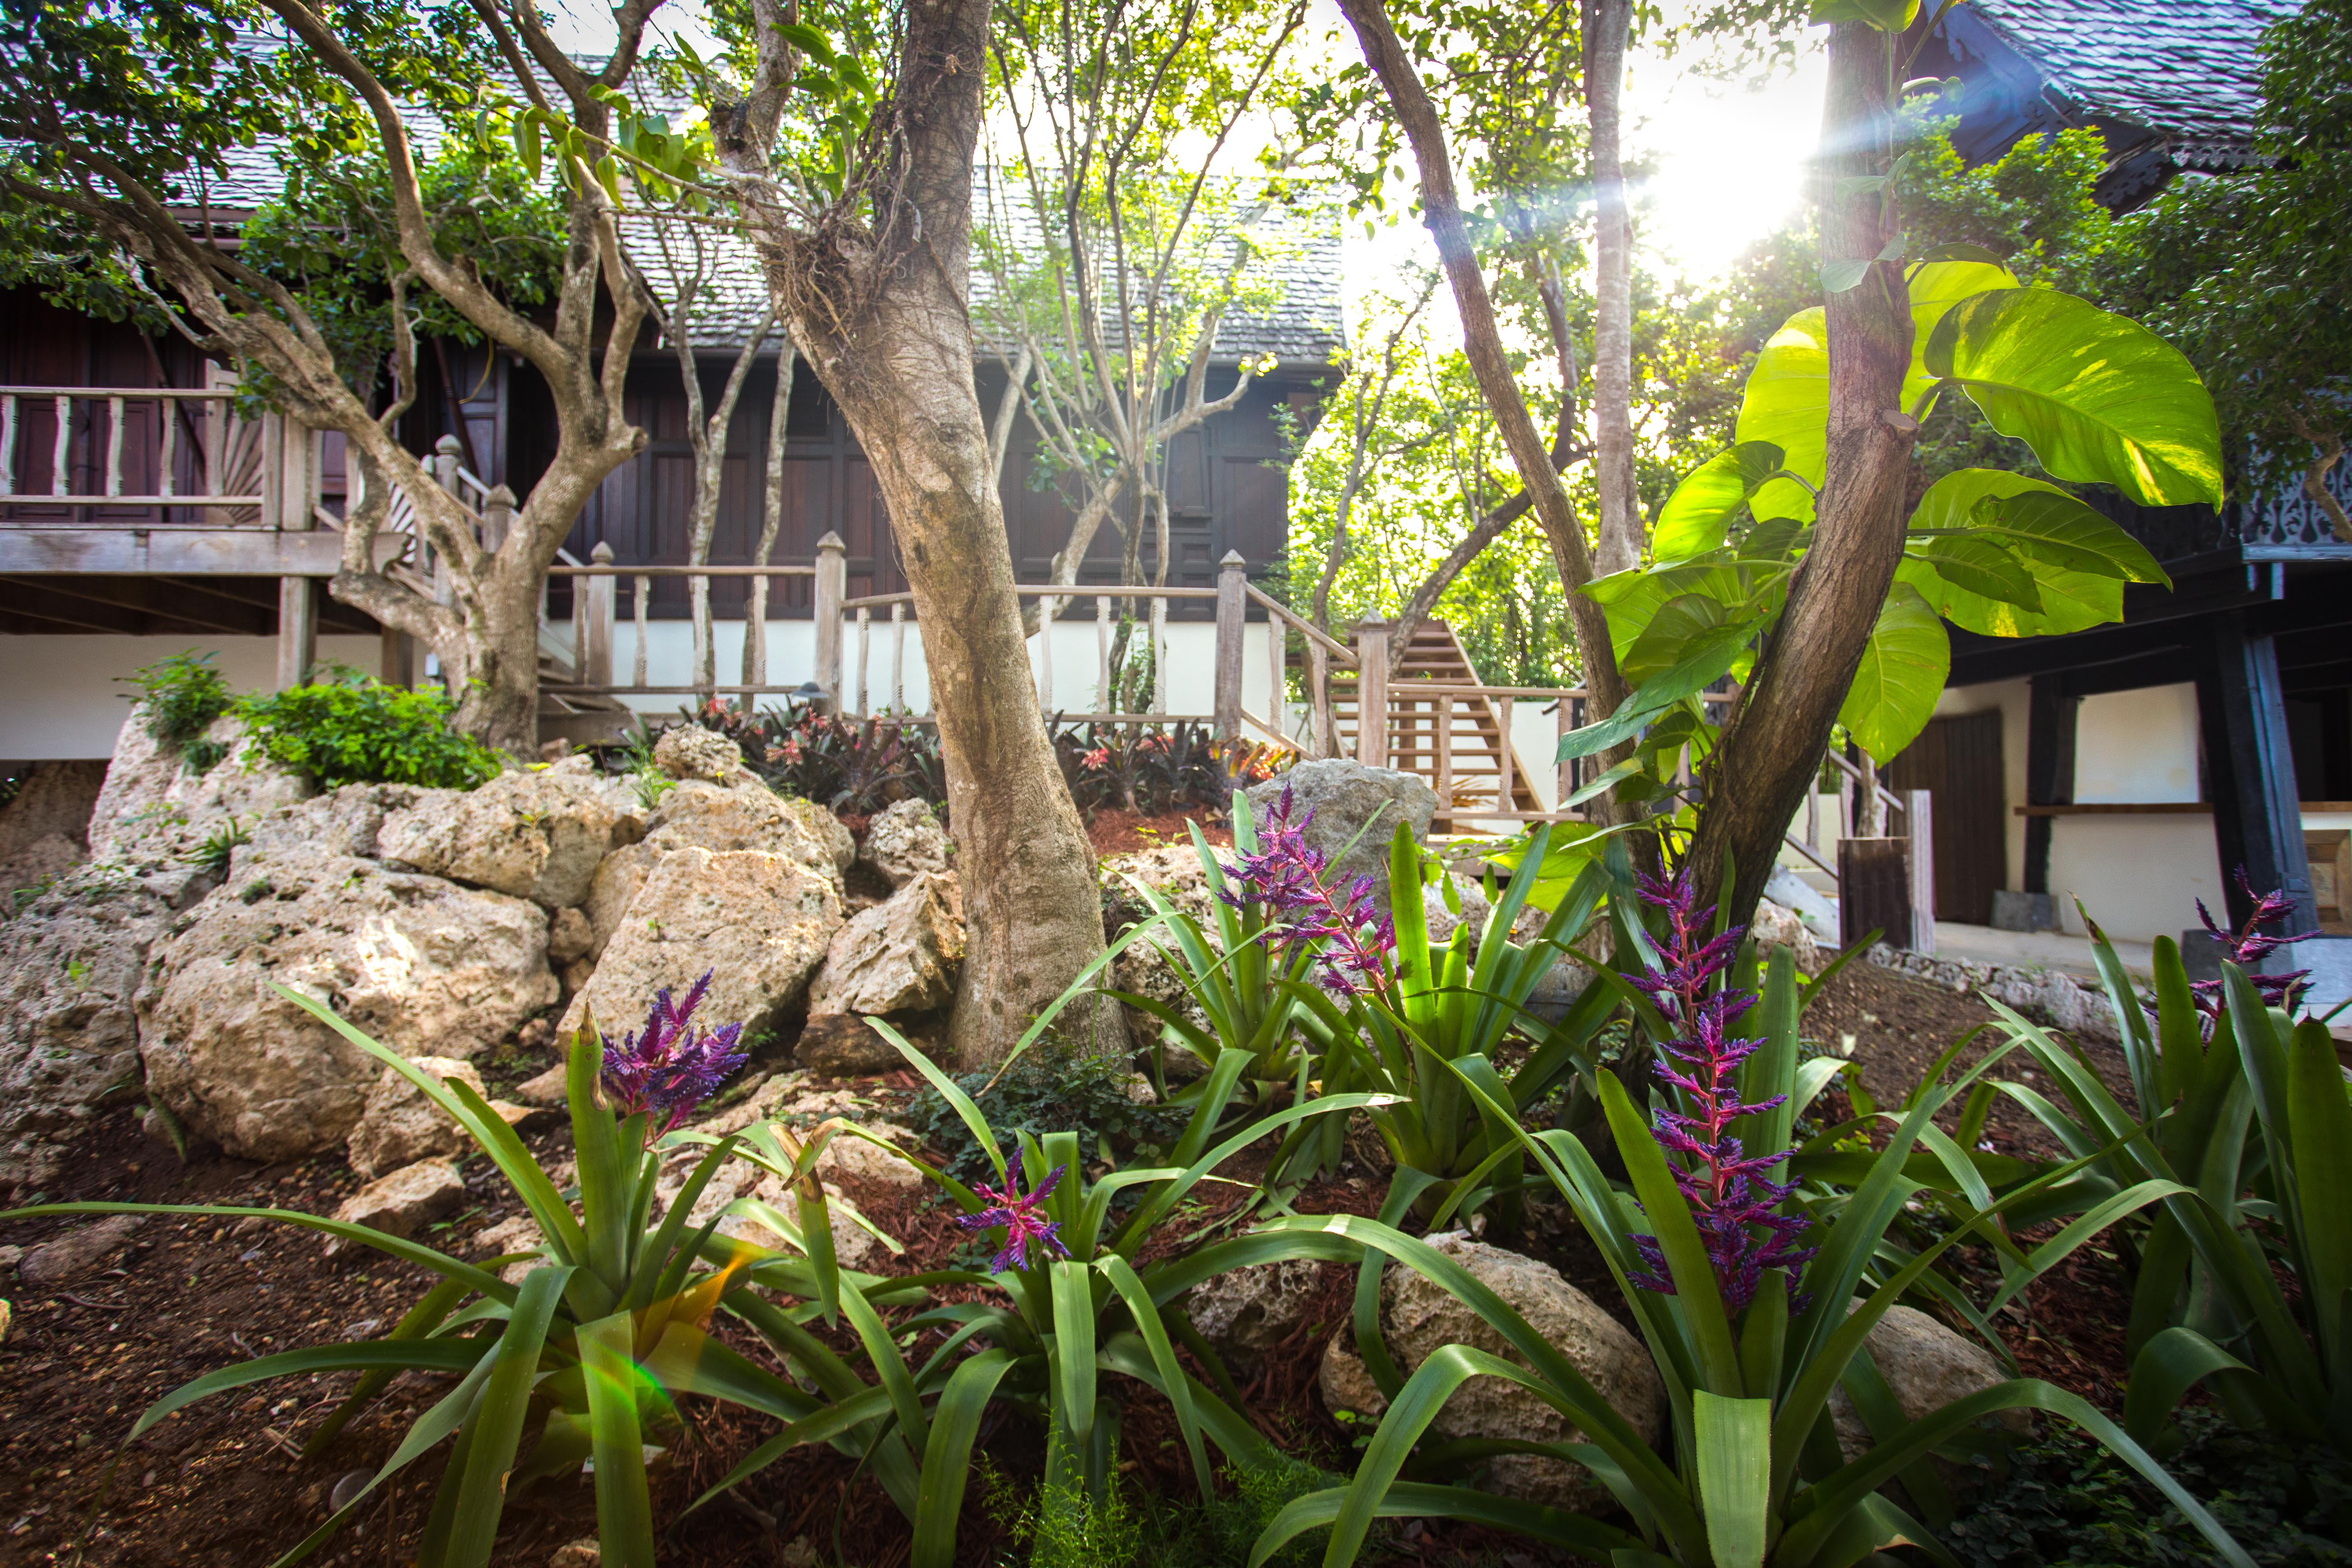 Taino Bathing Ritual and Anguilla's First House of Wellbeing